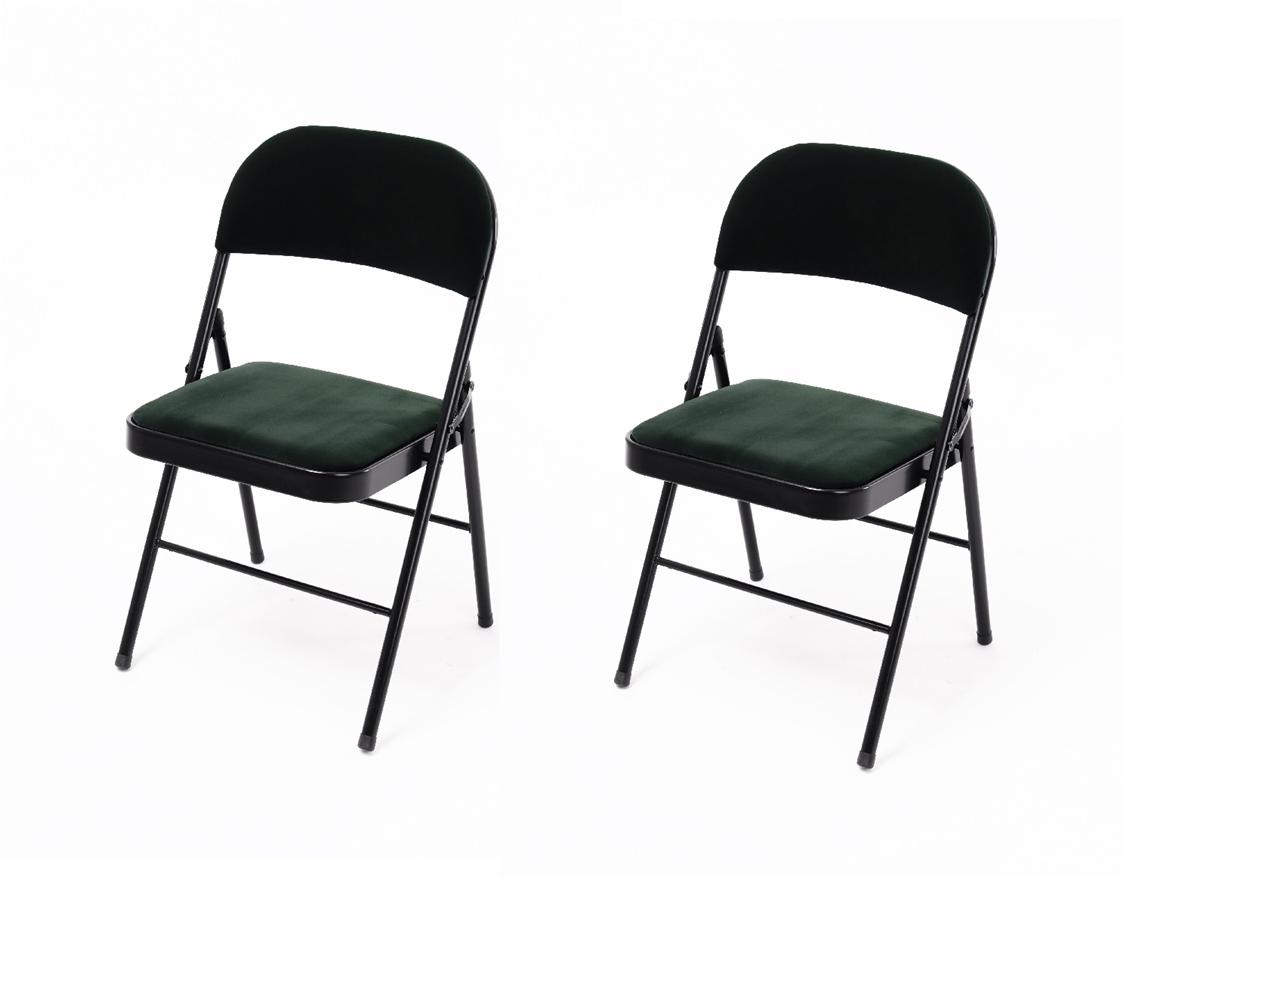 2 x Cushion Colour Green Dining Living Room Folding Office  : 730528523o from ebay.co.uk size 1280 x 998 jpeg 51kB